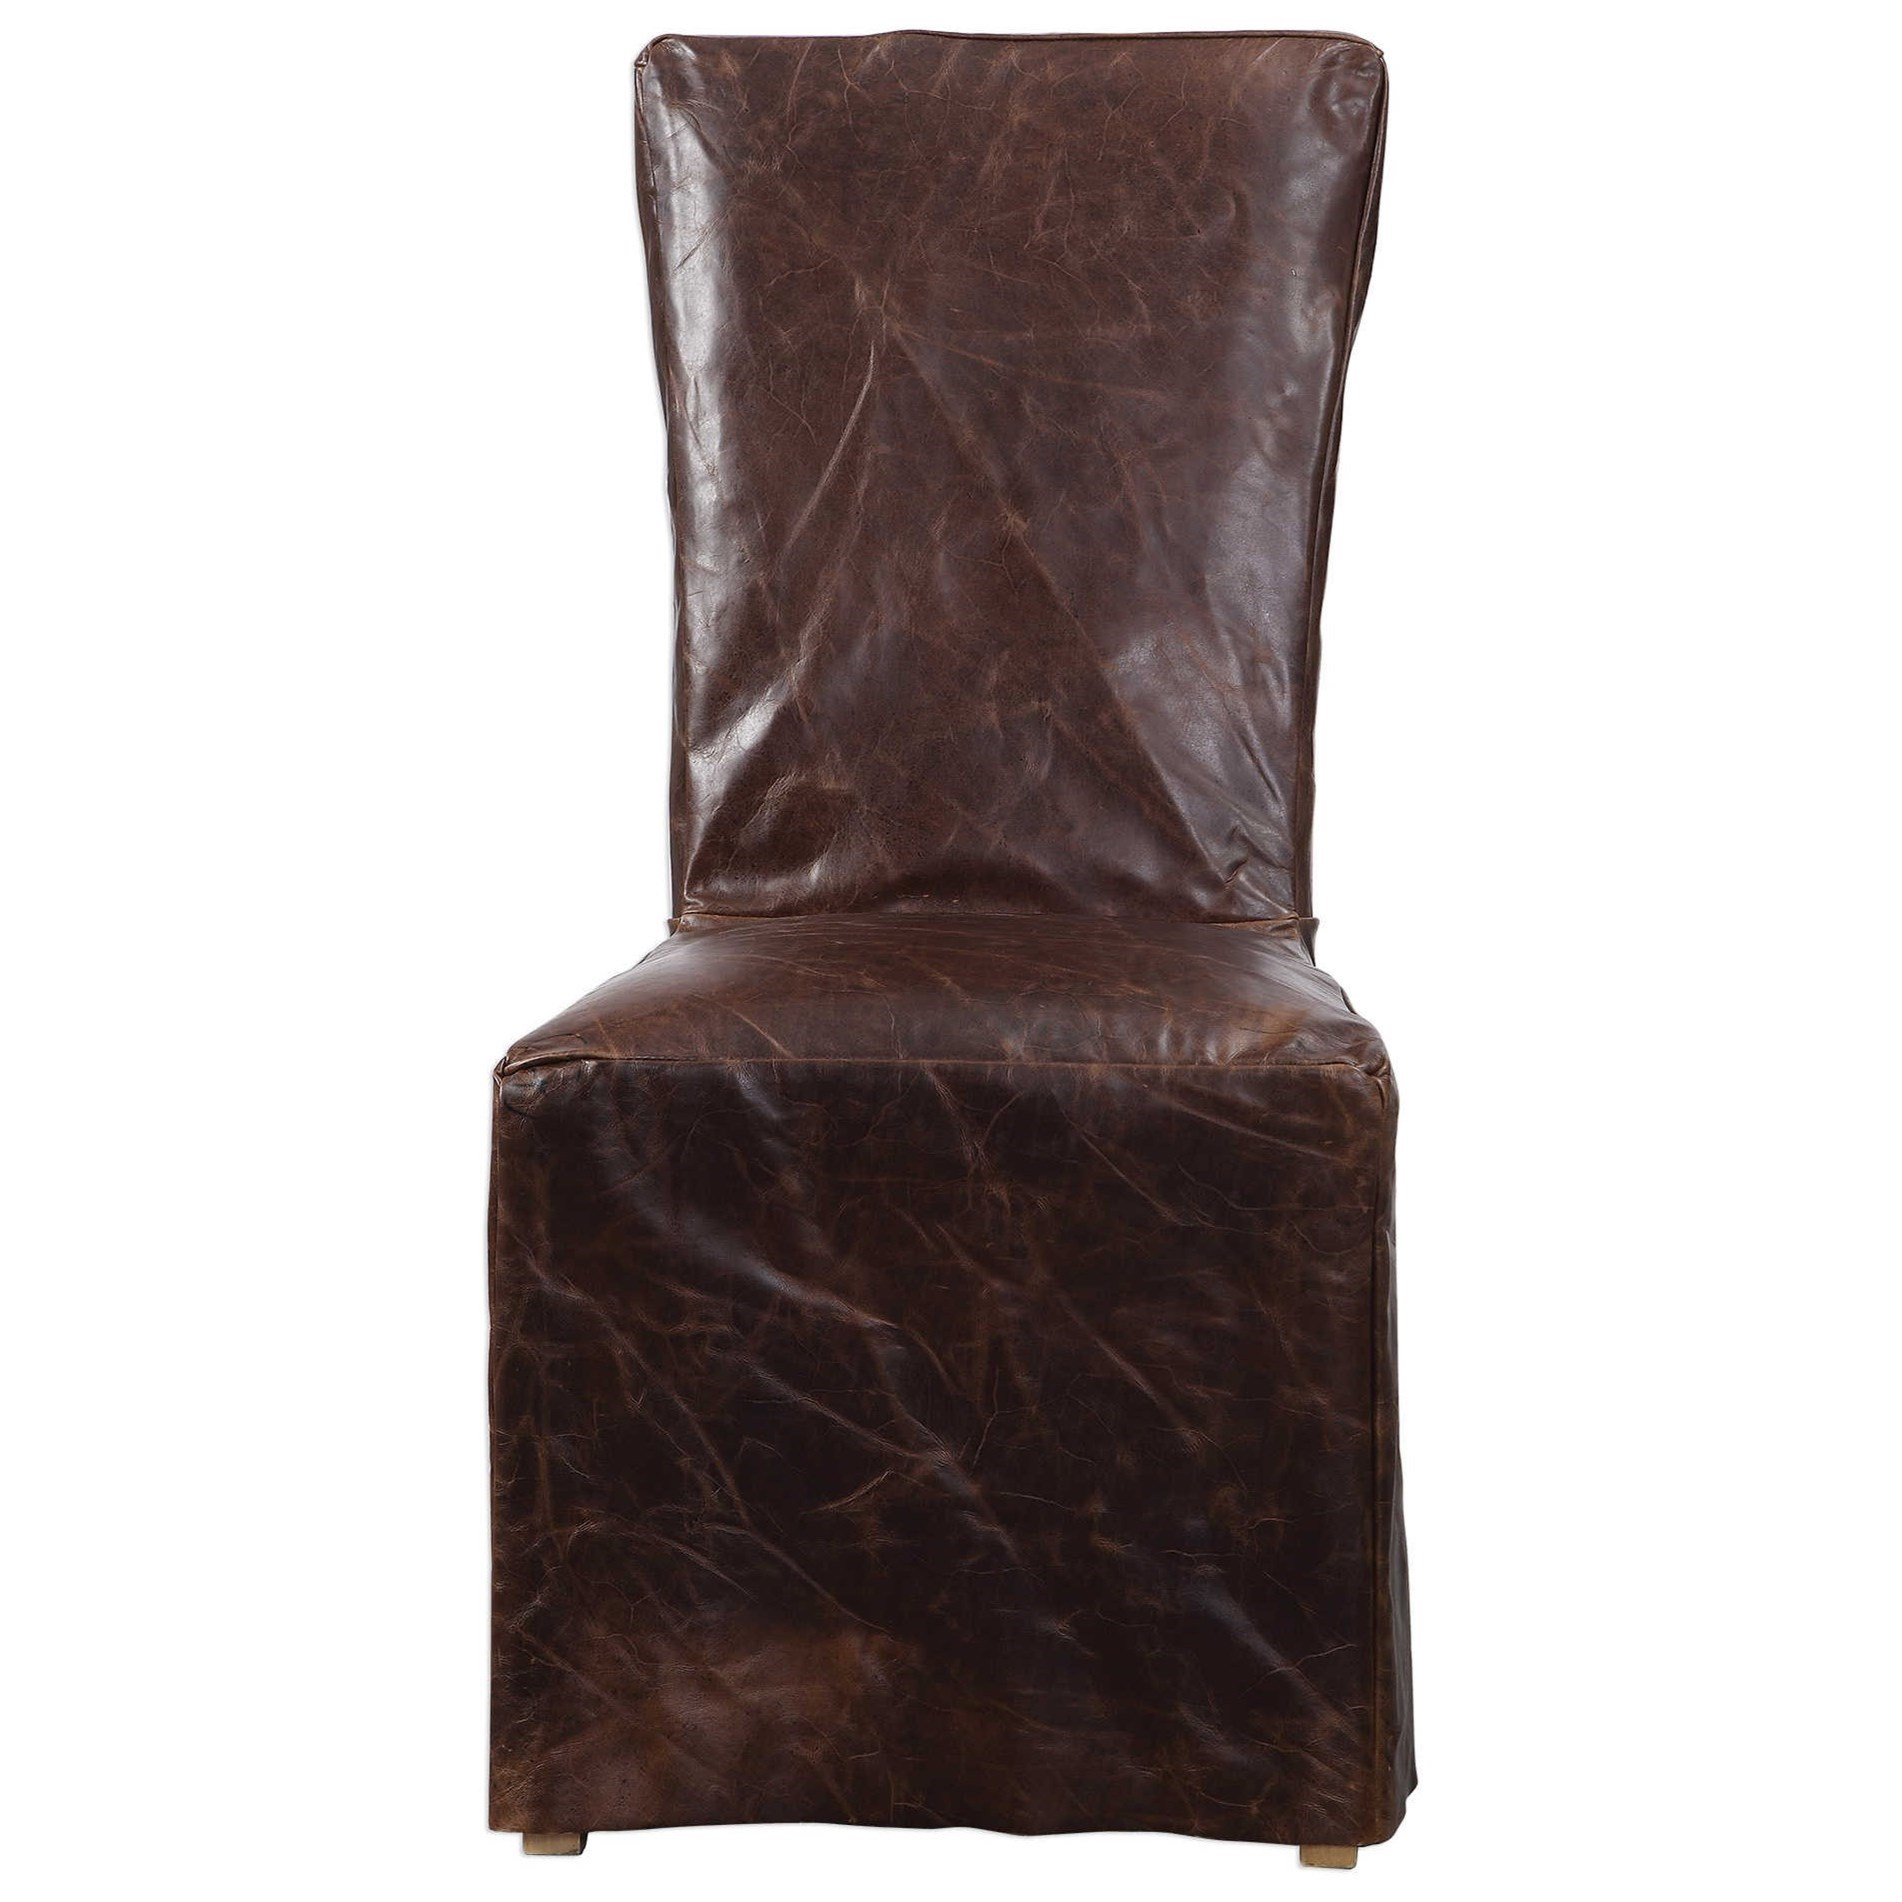 Accent Furniture - Accent Chairs Oaklyn Armless Chair by Uttermost at Mueller Furniture